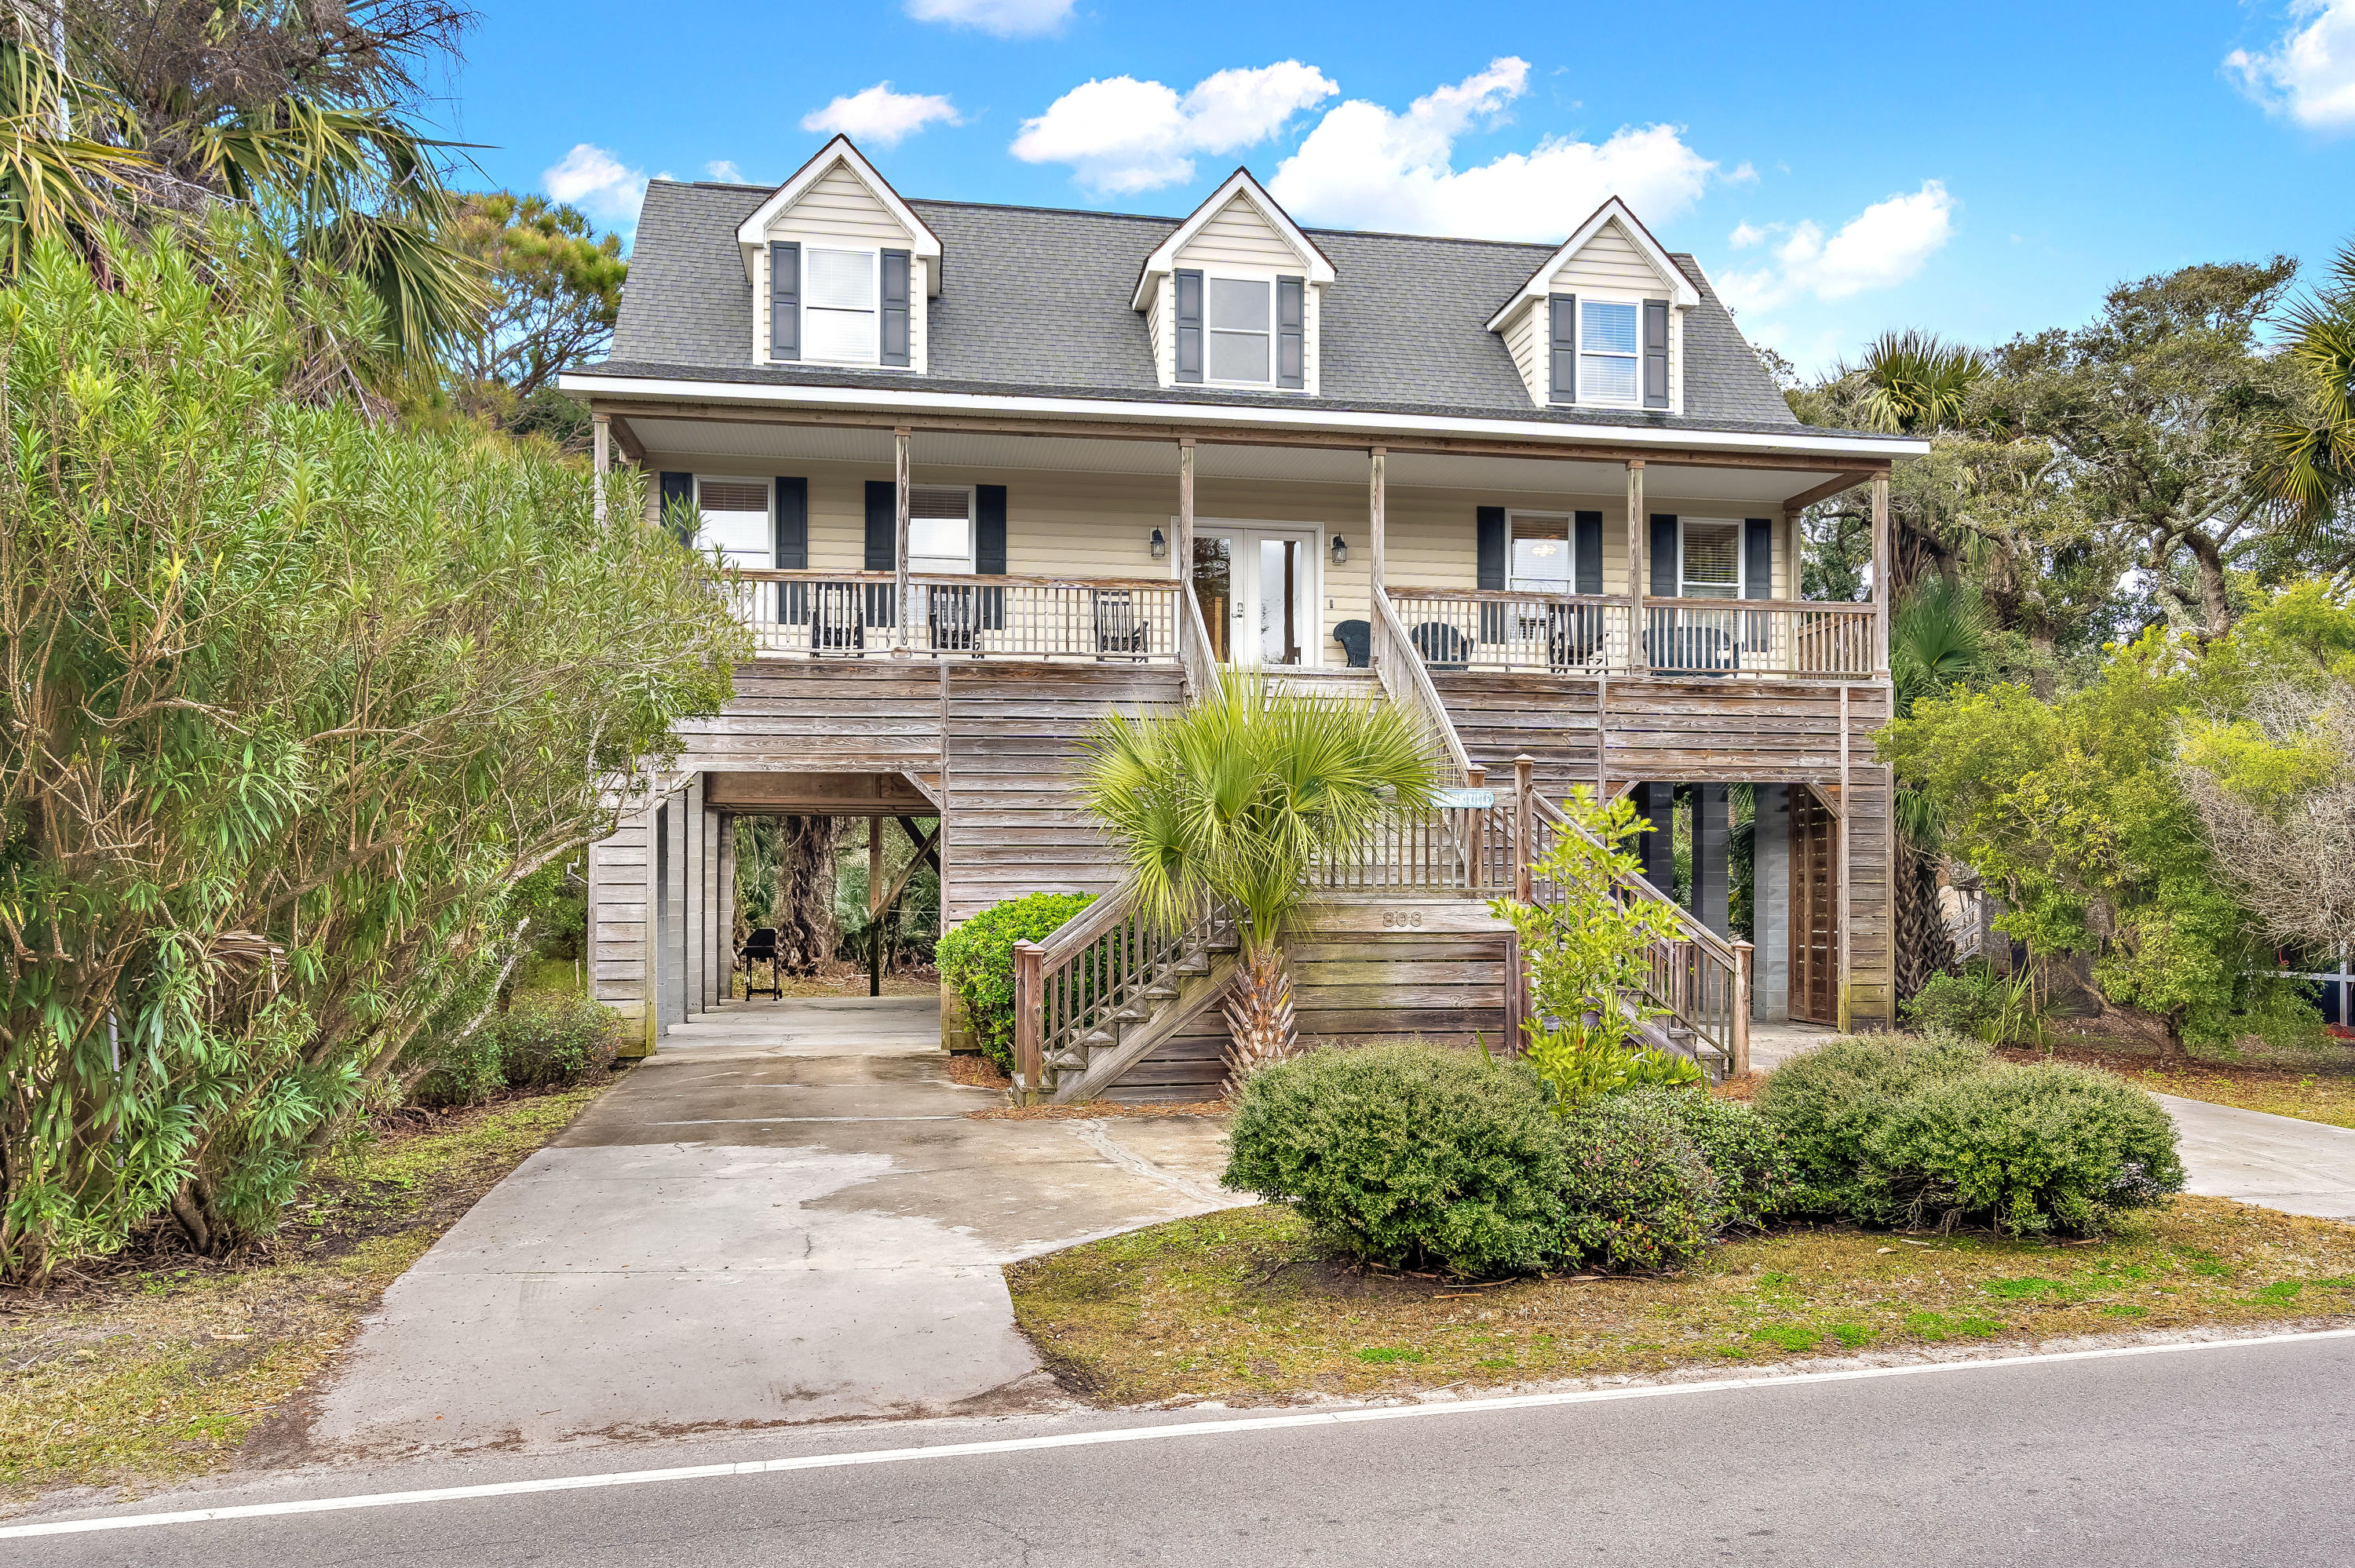 Folly Beach Homes For Sale - 808 Ashley, Folly Beach, SC - 4